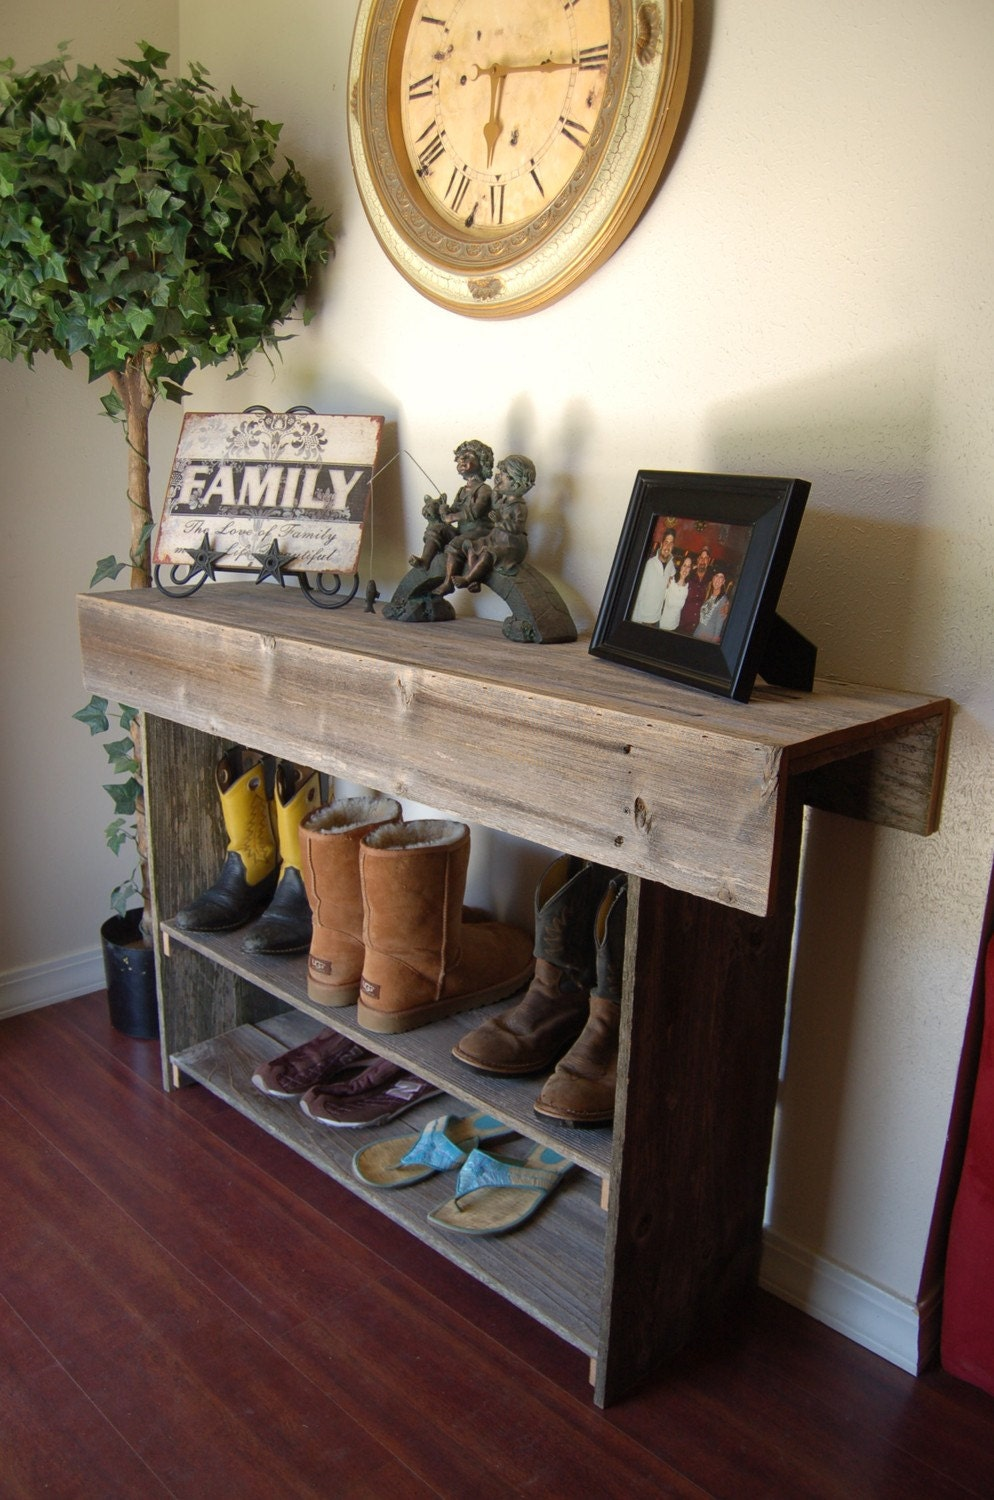 Popular items for recycled wood furniture on Etsy